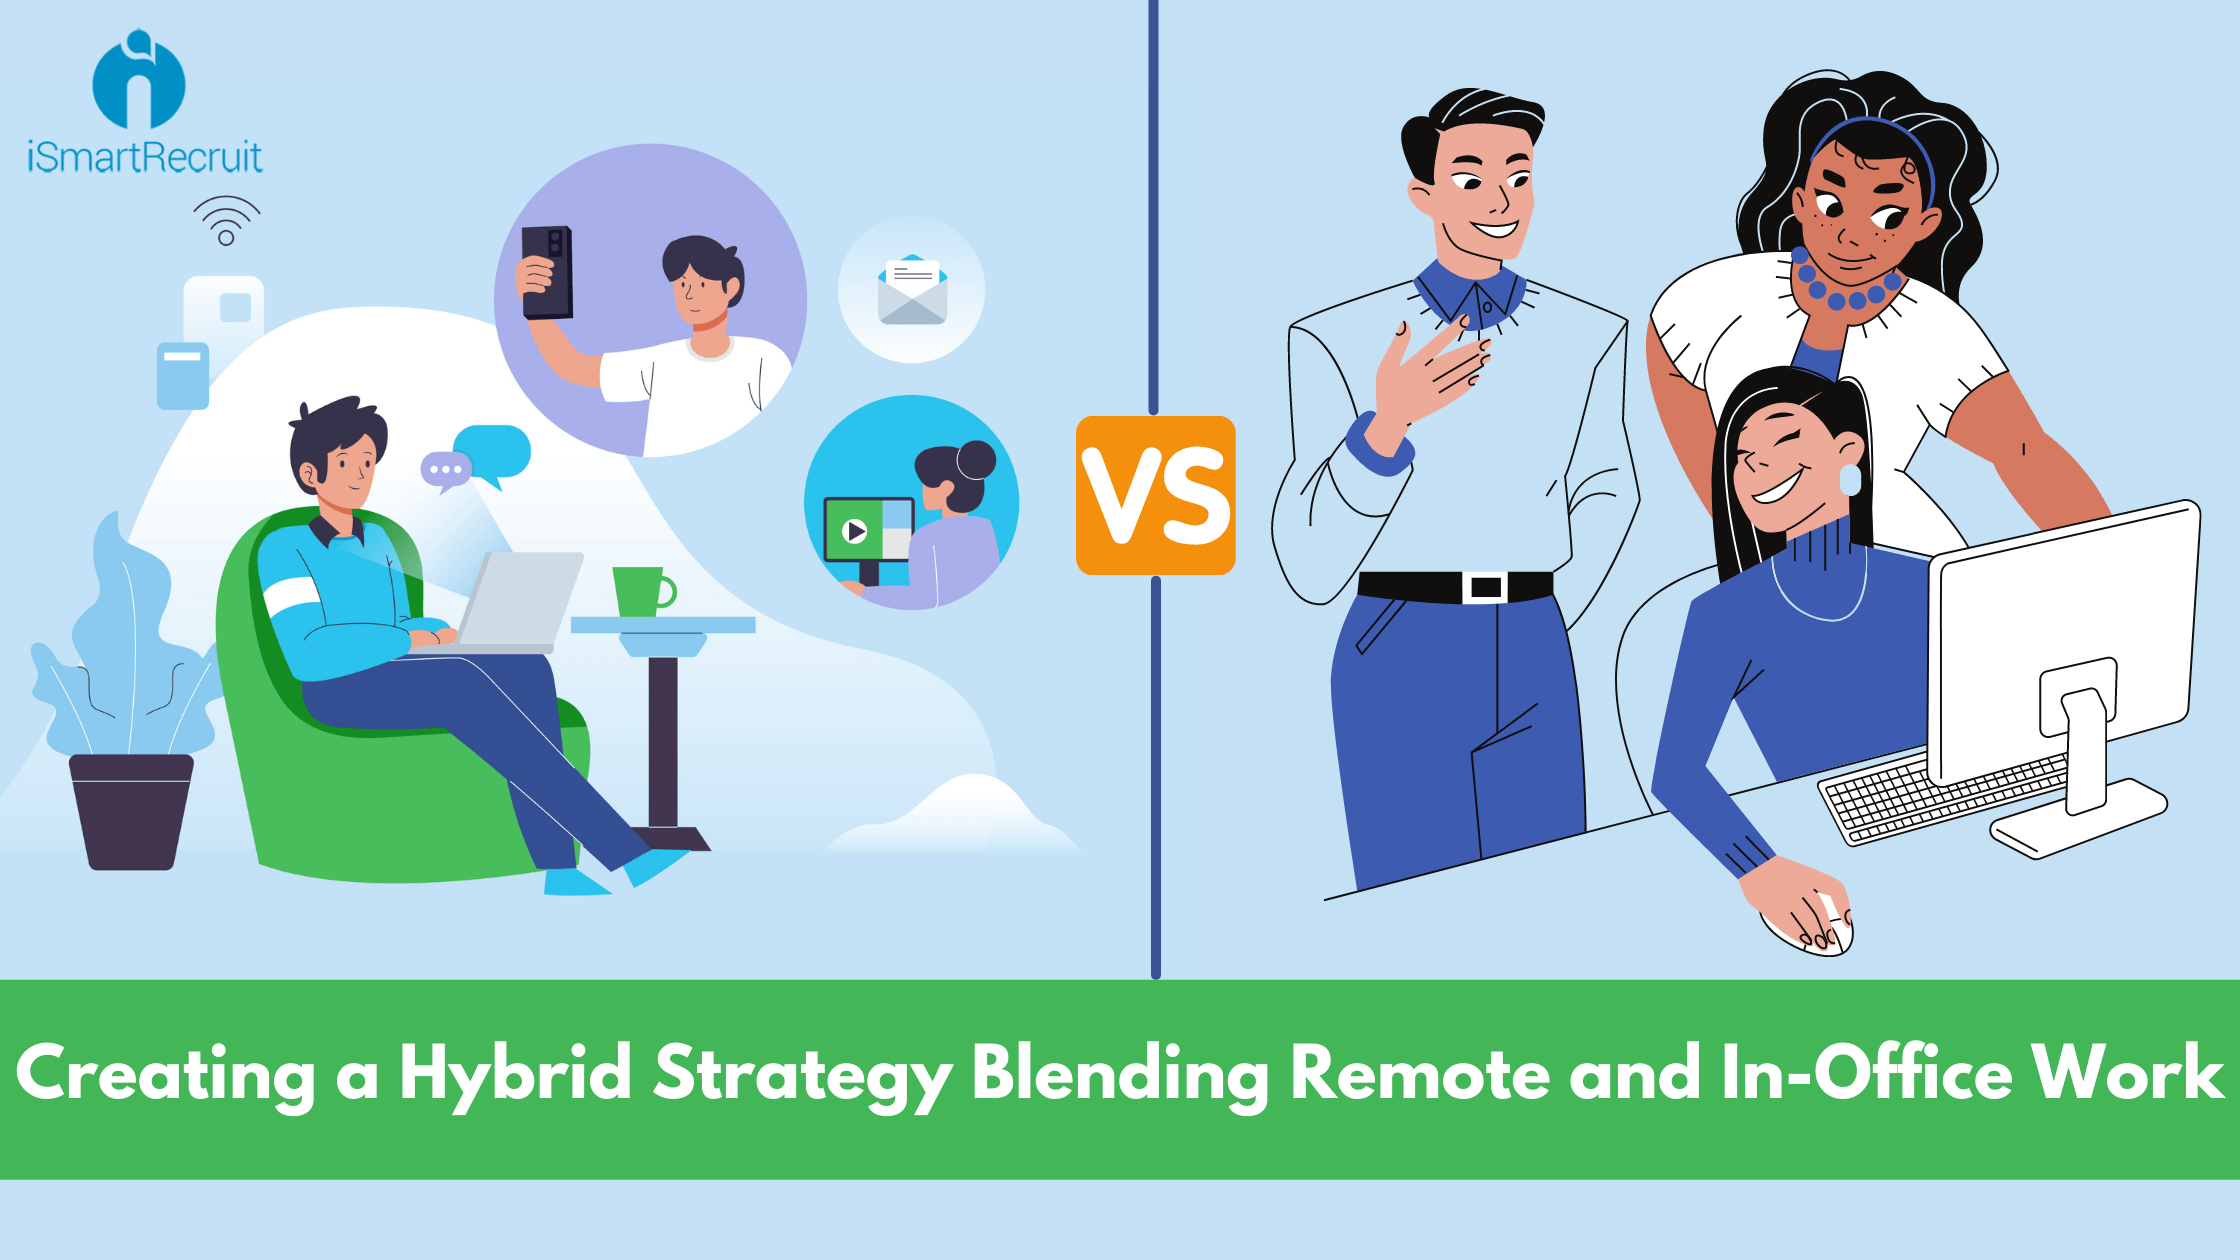 Creating a Hybrid Strategy Blending Remote and In-Office Work